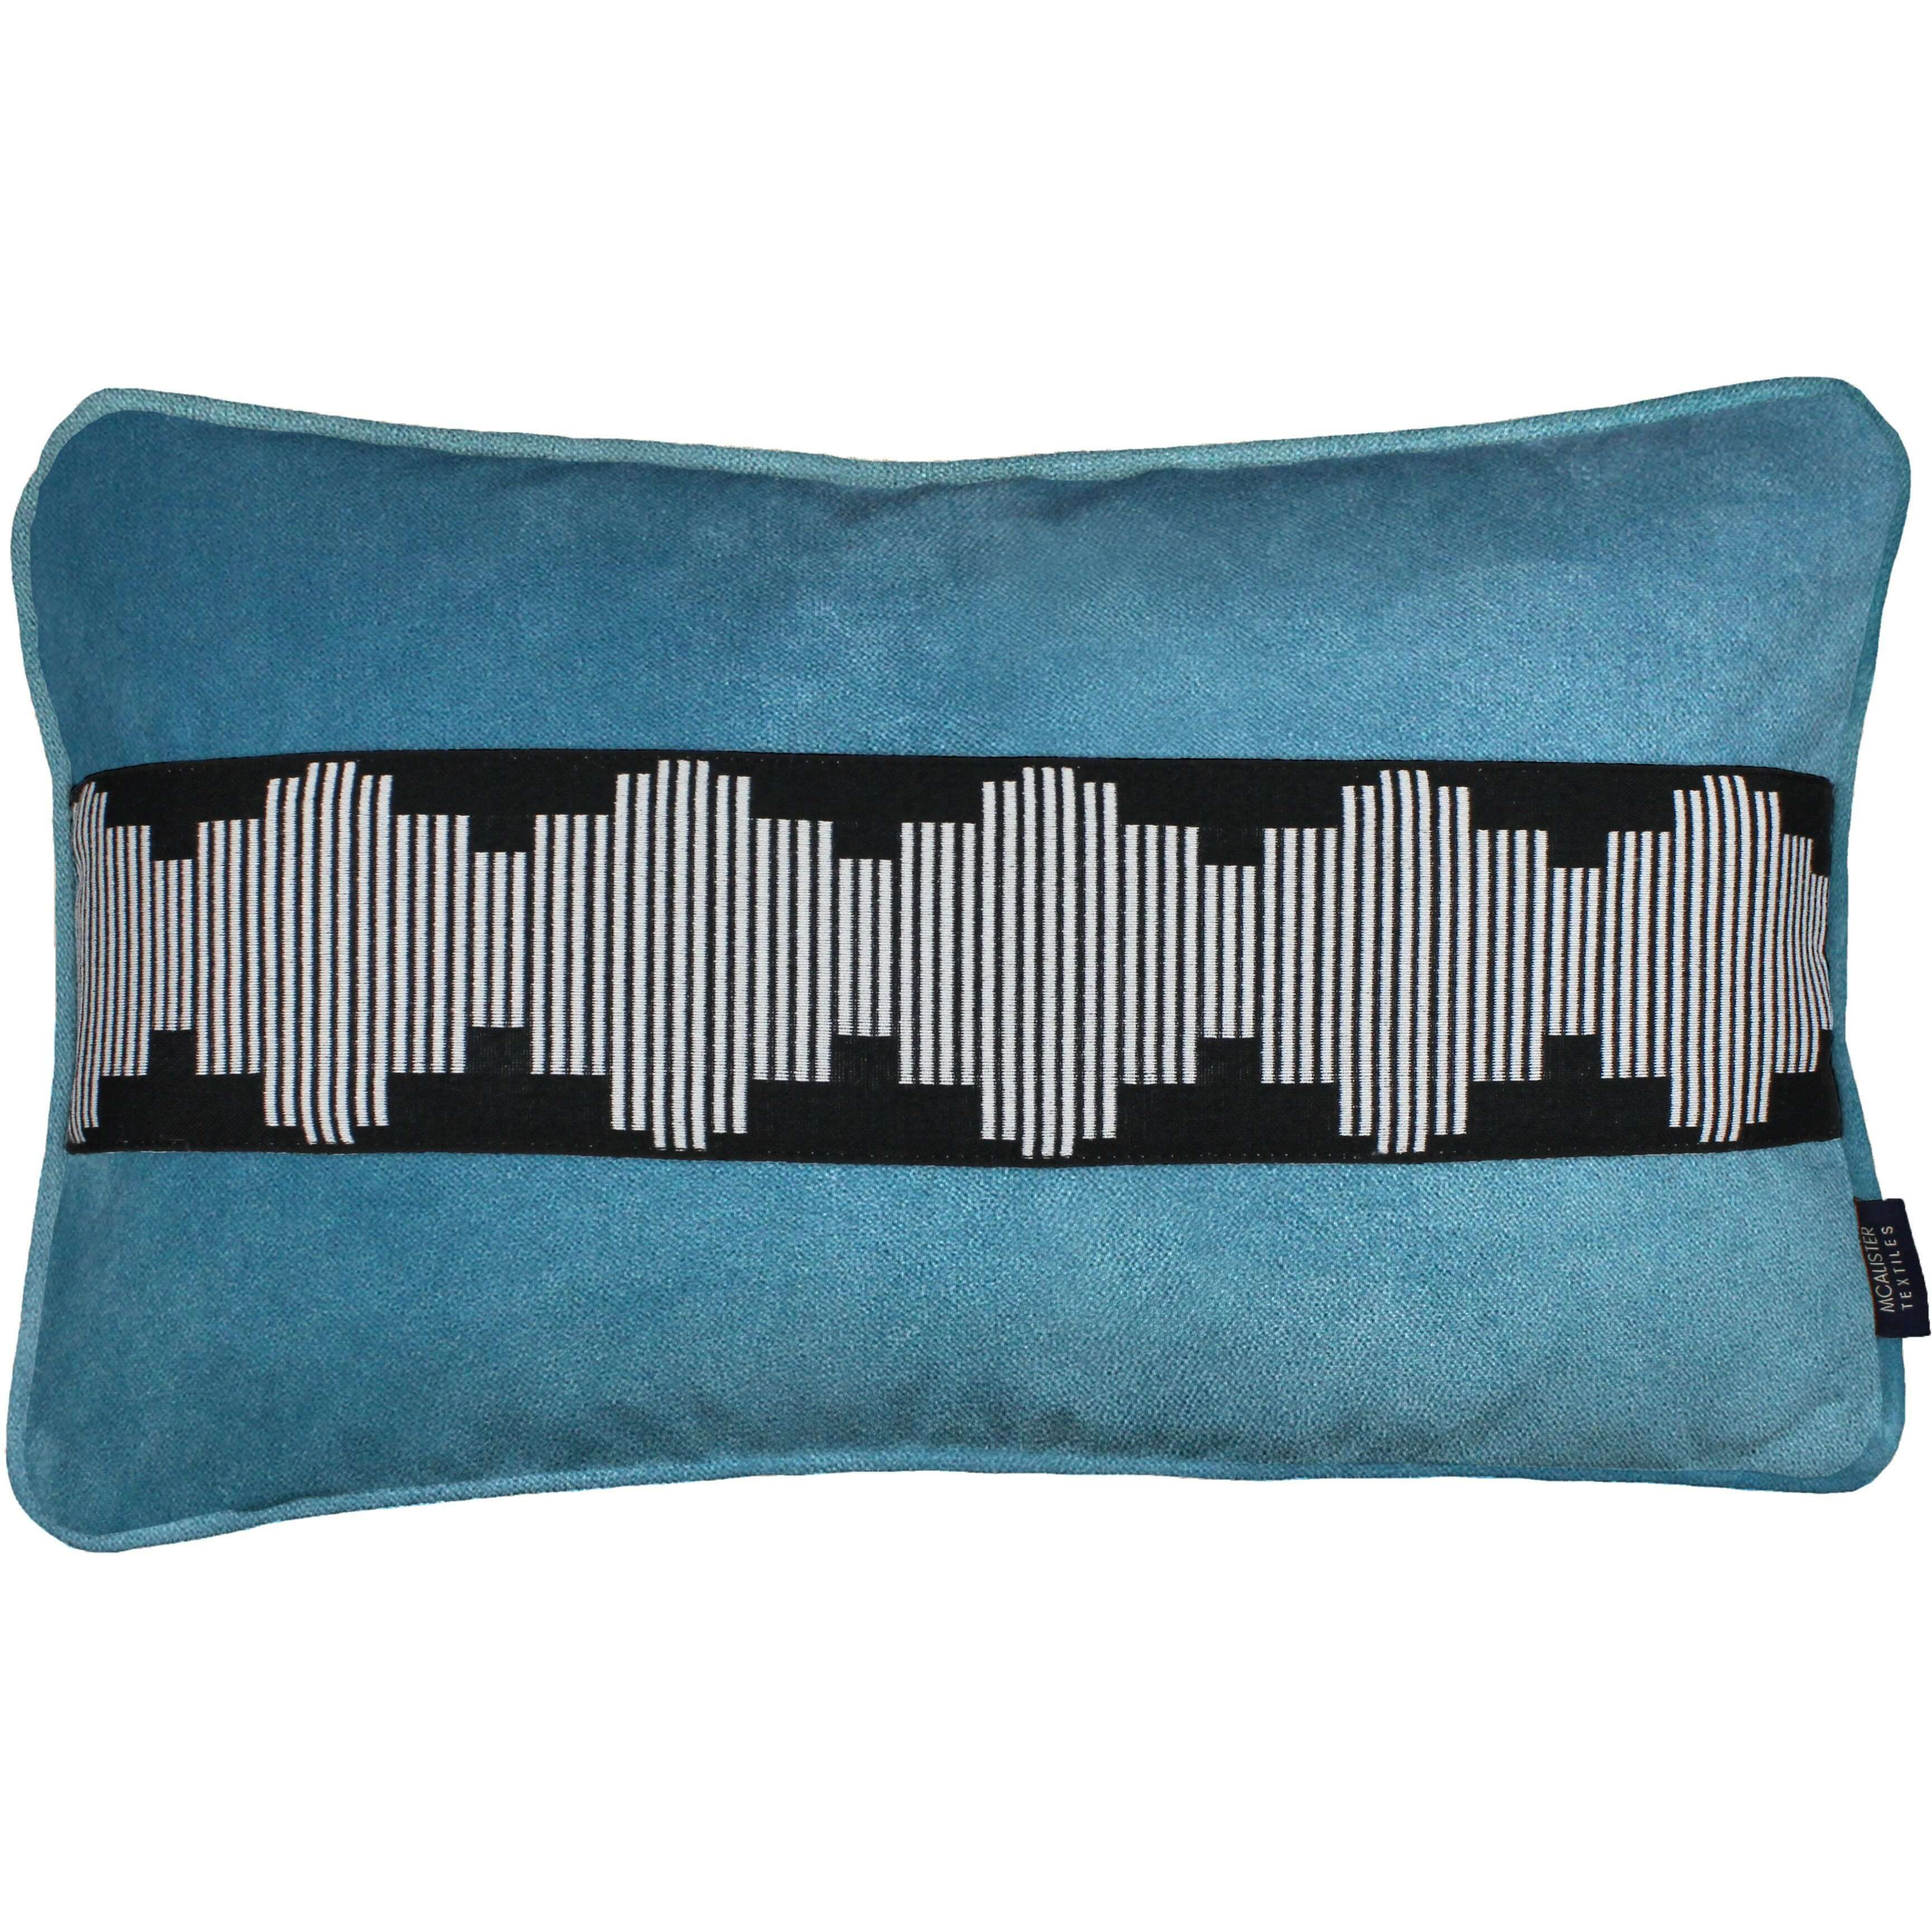 McAlister Textiles Maya Striped Duck Egg Blue Velvet Cushion Cushions and Covers Cover Only 50cm x 30cm